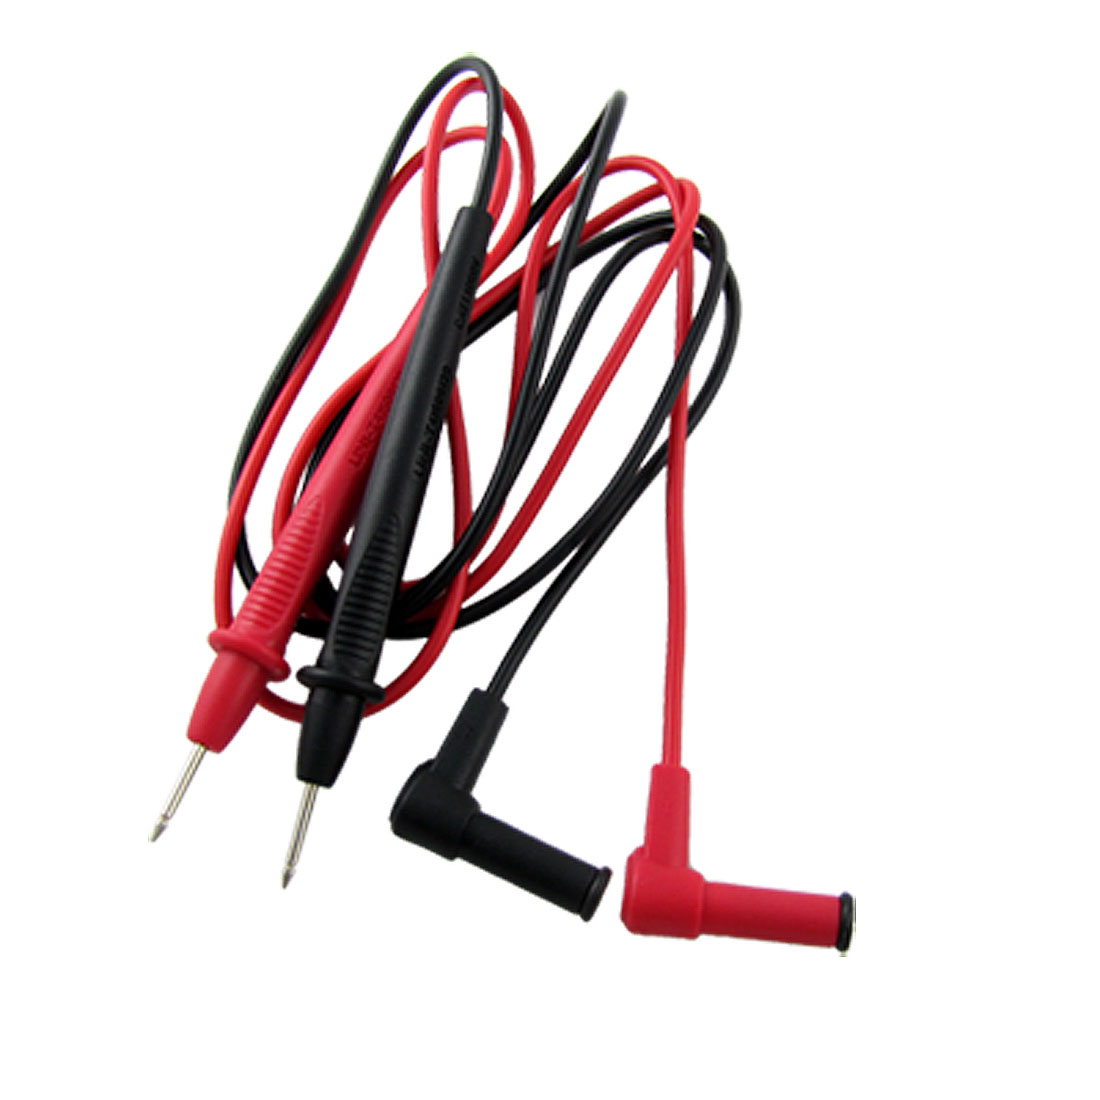 1 Pair 10A Replacement Universal Multimeter Test Lead Probe